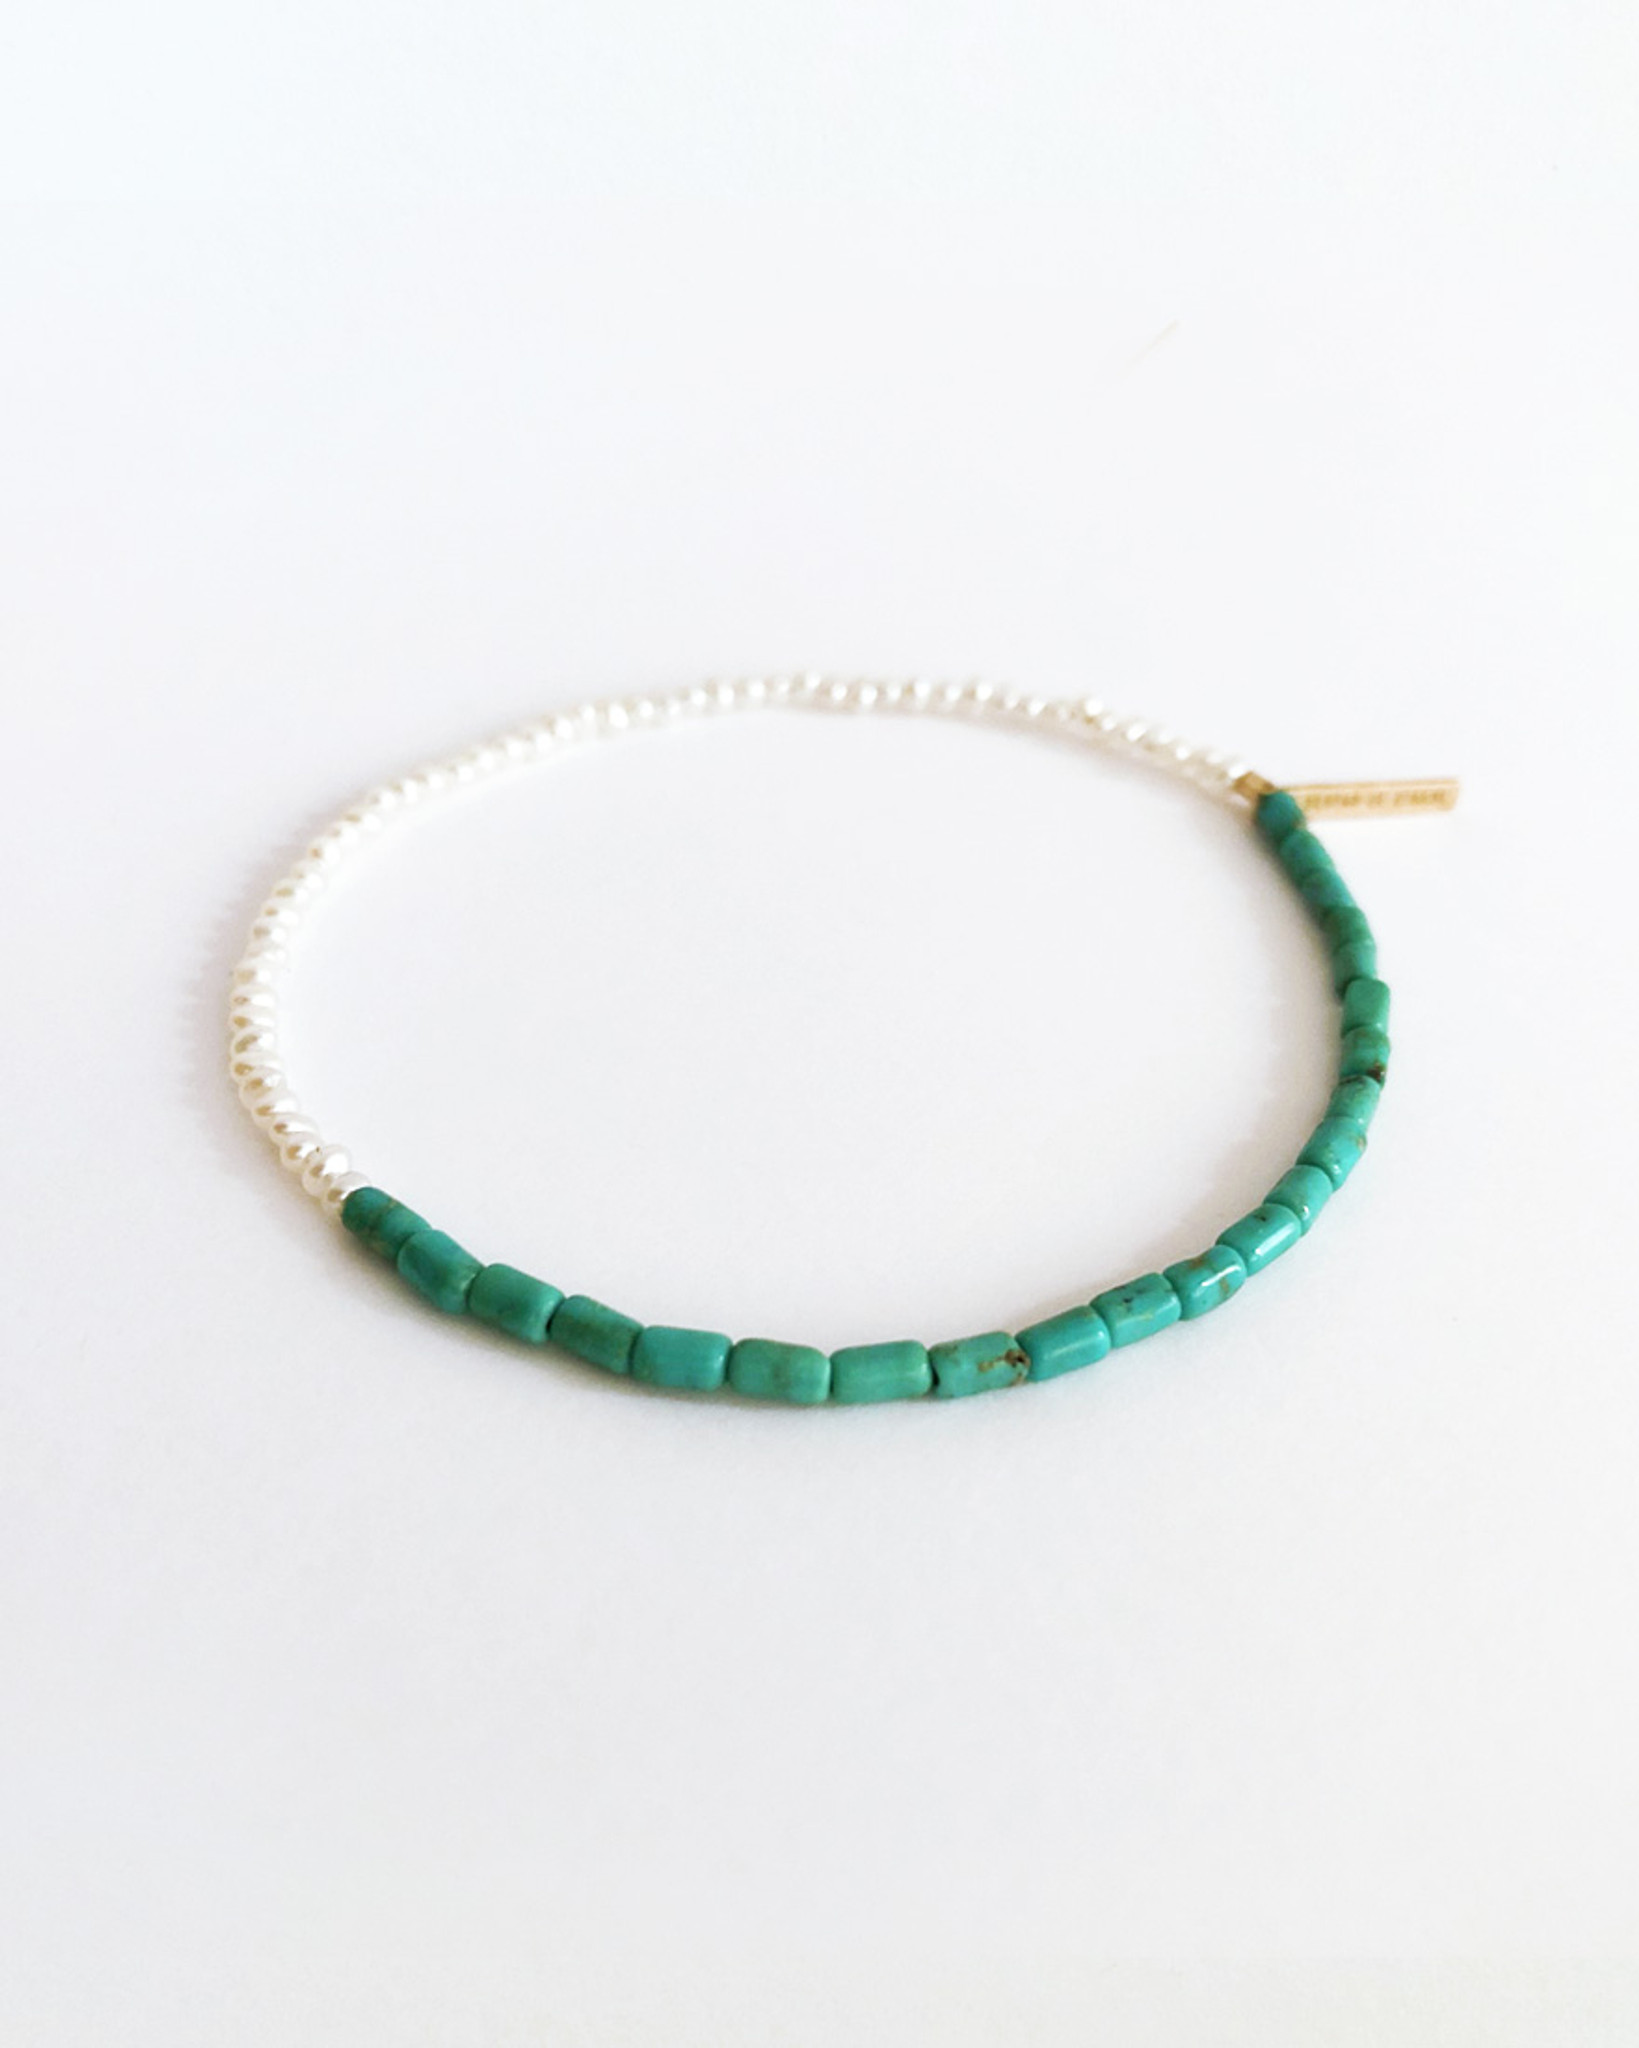 Side View of  jewelry Designer Nektar De Stagni's colorful stretch friendship bracelet, featuring Turquoise Beads and delicate Cultured Freshwater Seed Pearls.